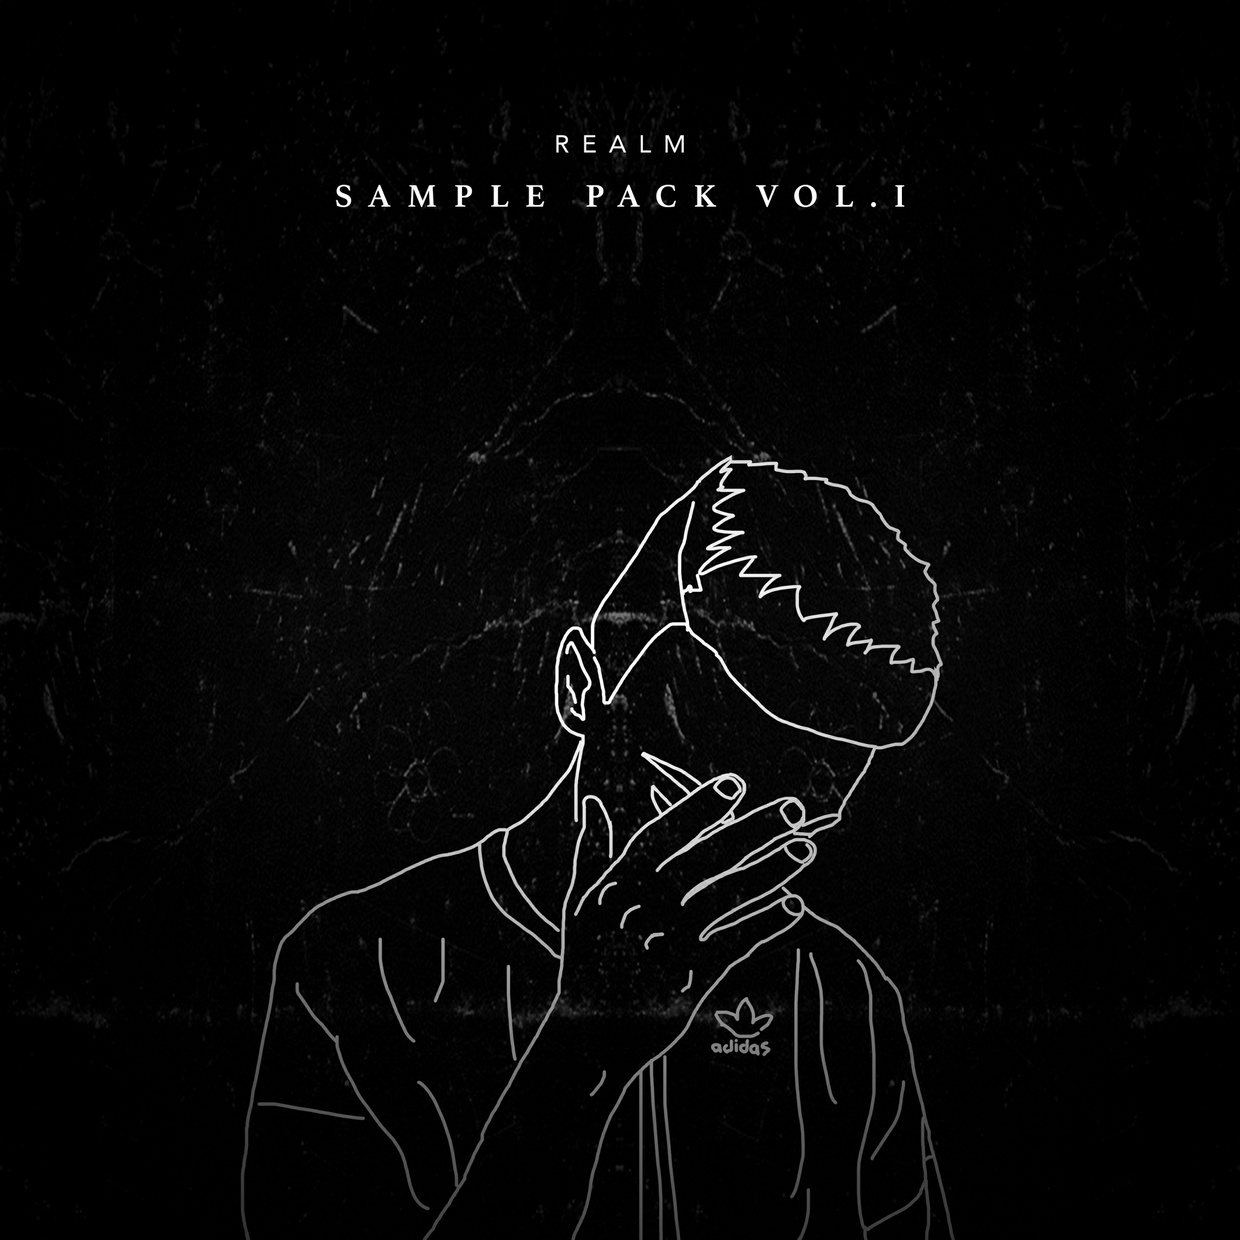 REALM Sample Pack Vol. 1